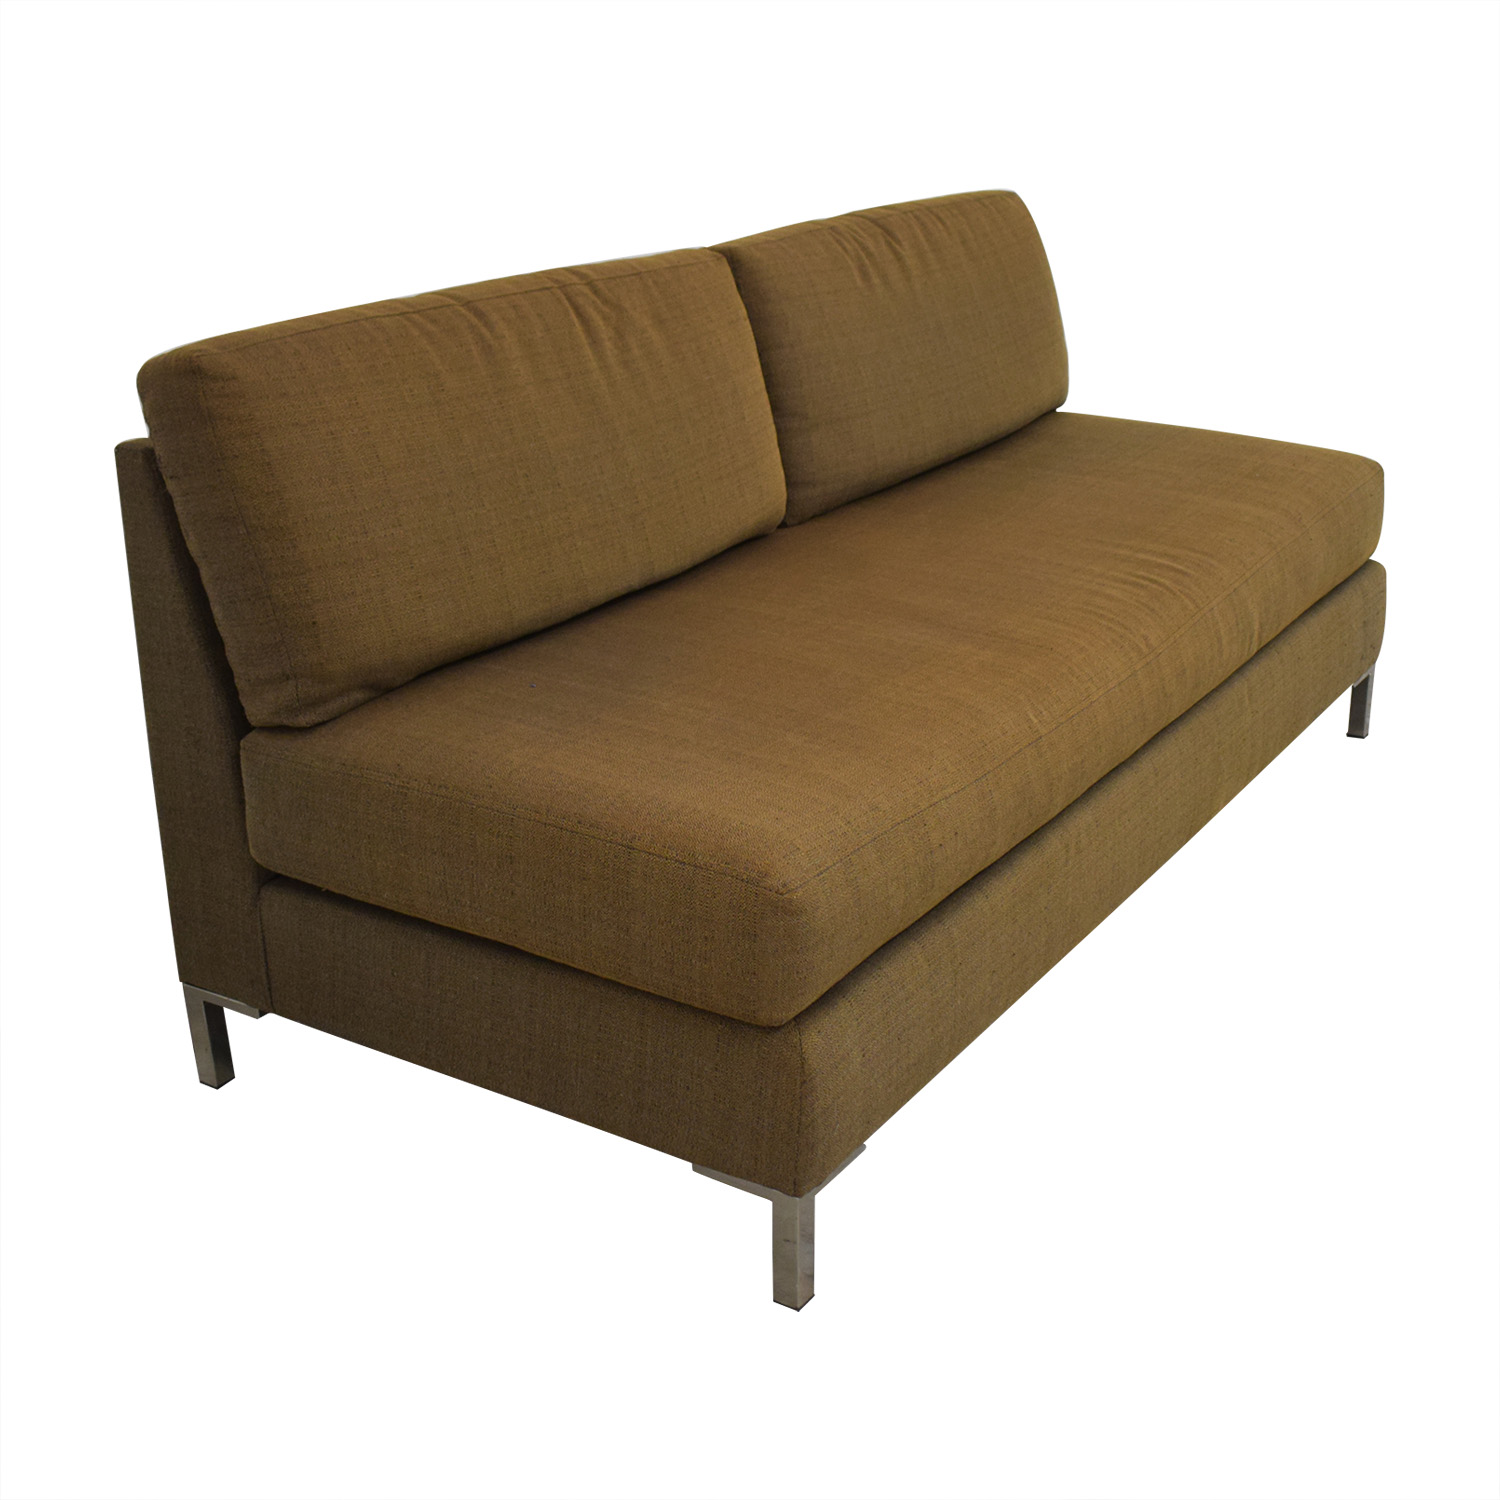 West Elm West Elm Armless Sofa coupon